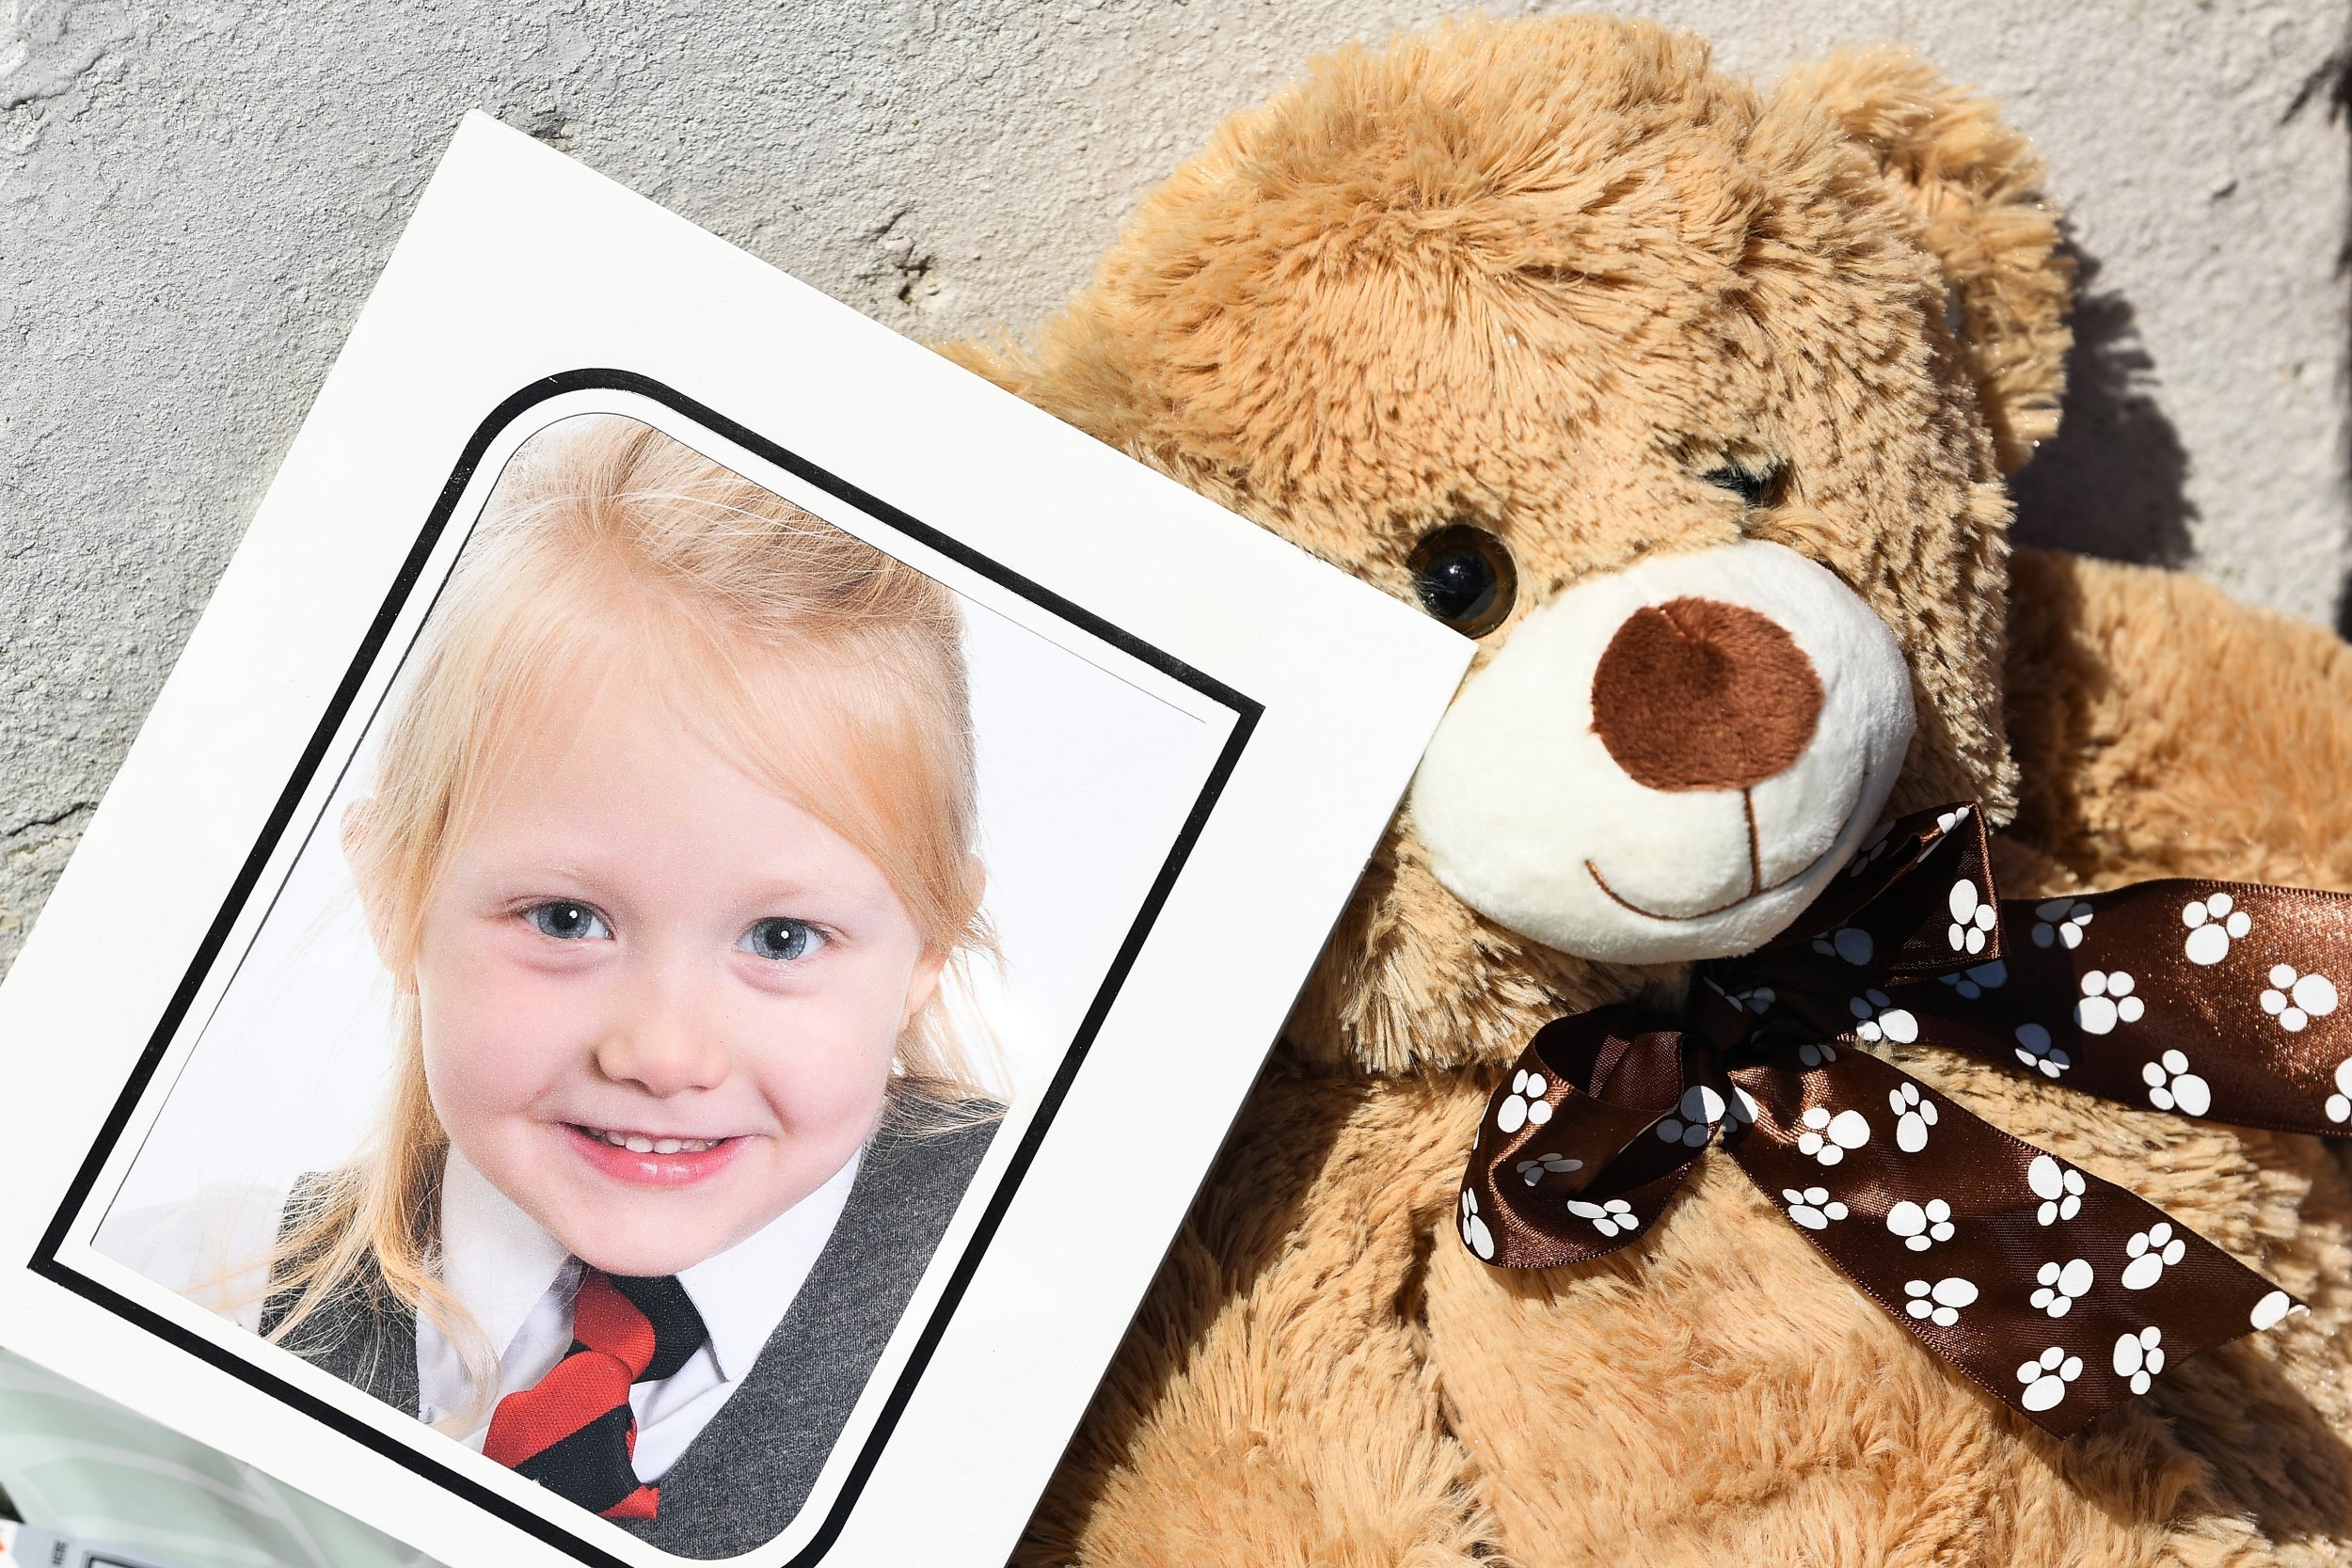 ROTHESAY, ISLE OF BUTE, SCOTLAND - JULY 04: A school picture of Alesha MacPhail is left at a house on Ardbeg road on July 4, 2018 in Rothesay, Isle of Bute, Scotland.The case has become a murder inquiry yesterday evening following the post-mortem examination on the six year old, police have yet to confirm how she died. (Photo by Jeff J Mitchell/Getty Images)